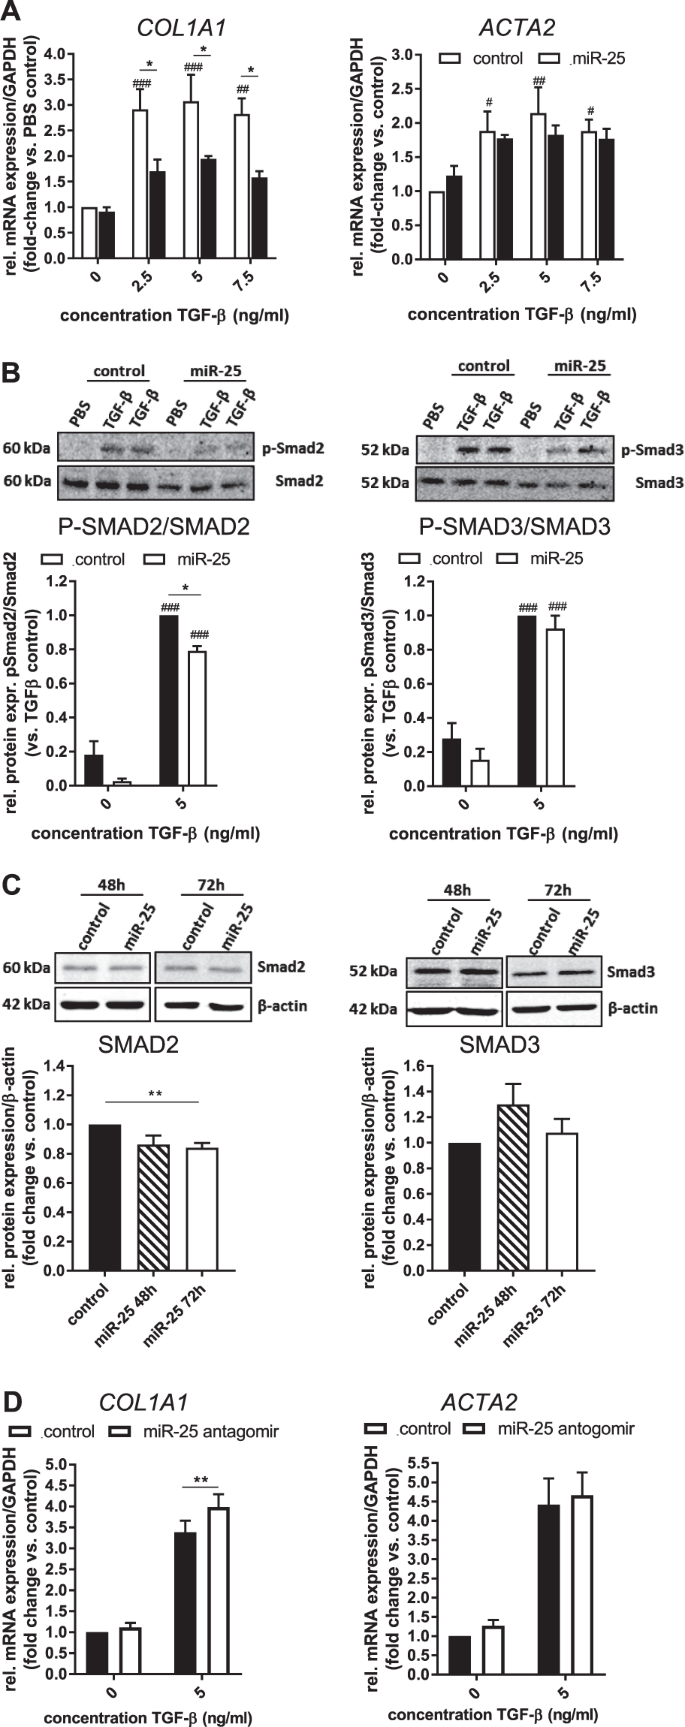 Overexpression of miRNA-25-3p inhibits Notch1 signaling and TGF-β